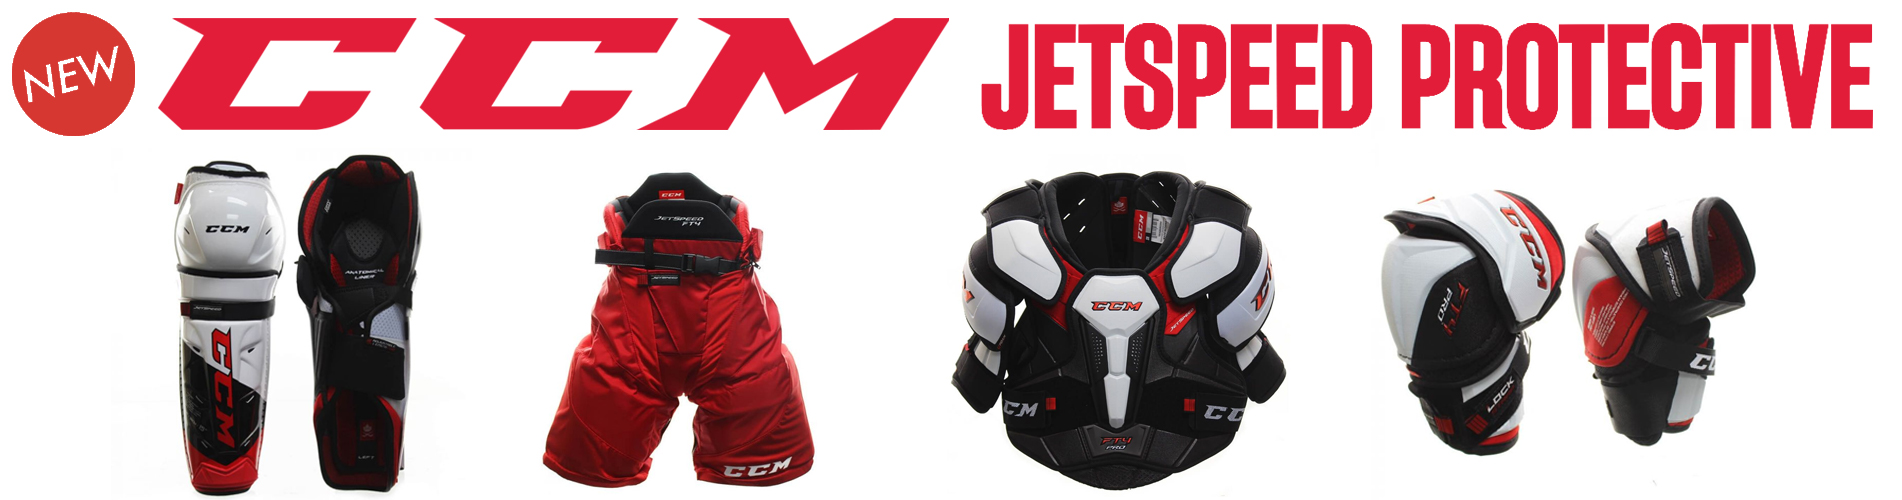 New 2021 CCM Jetspeed Protective Gear